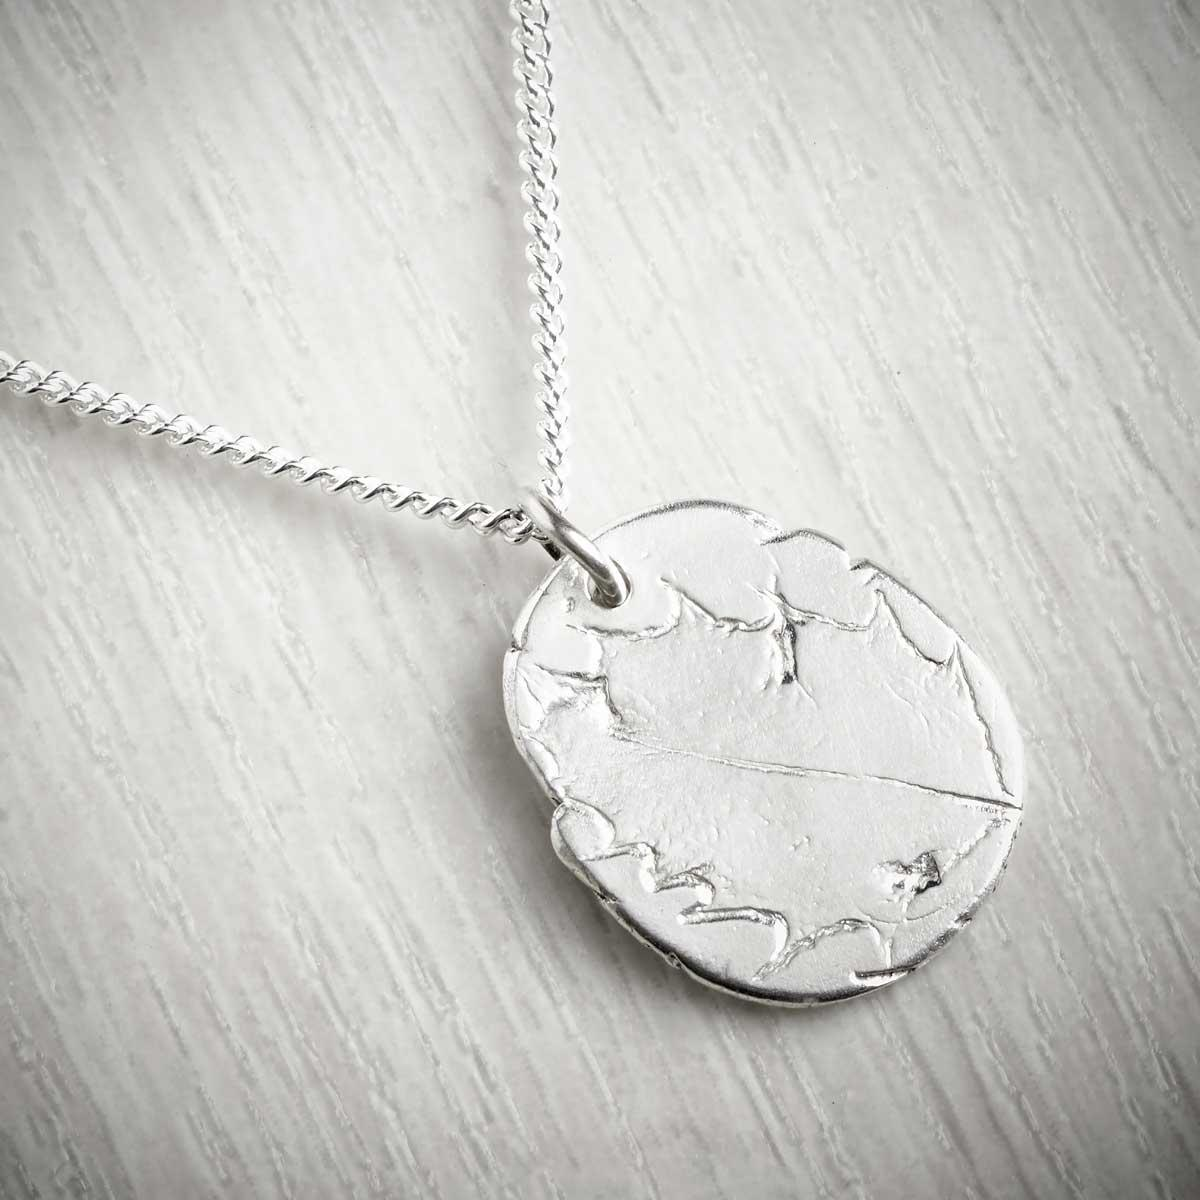 Holly December Fossil Pendant by Becca Macdonald. Image of THE JEWELLERY MAKERS.